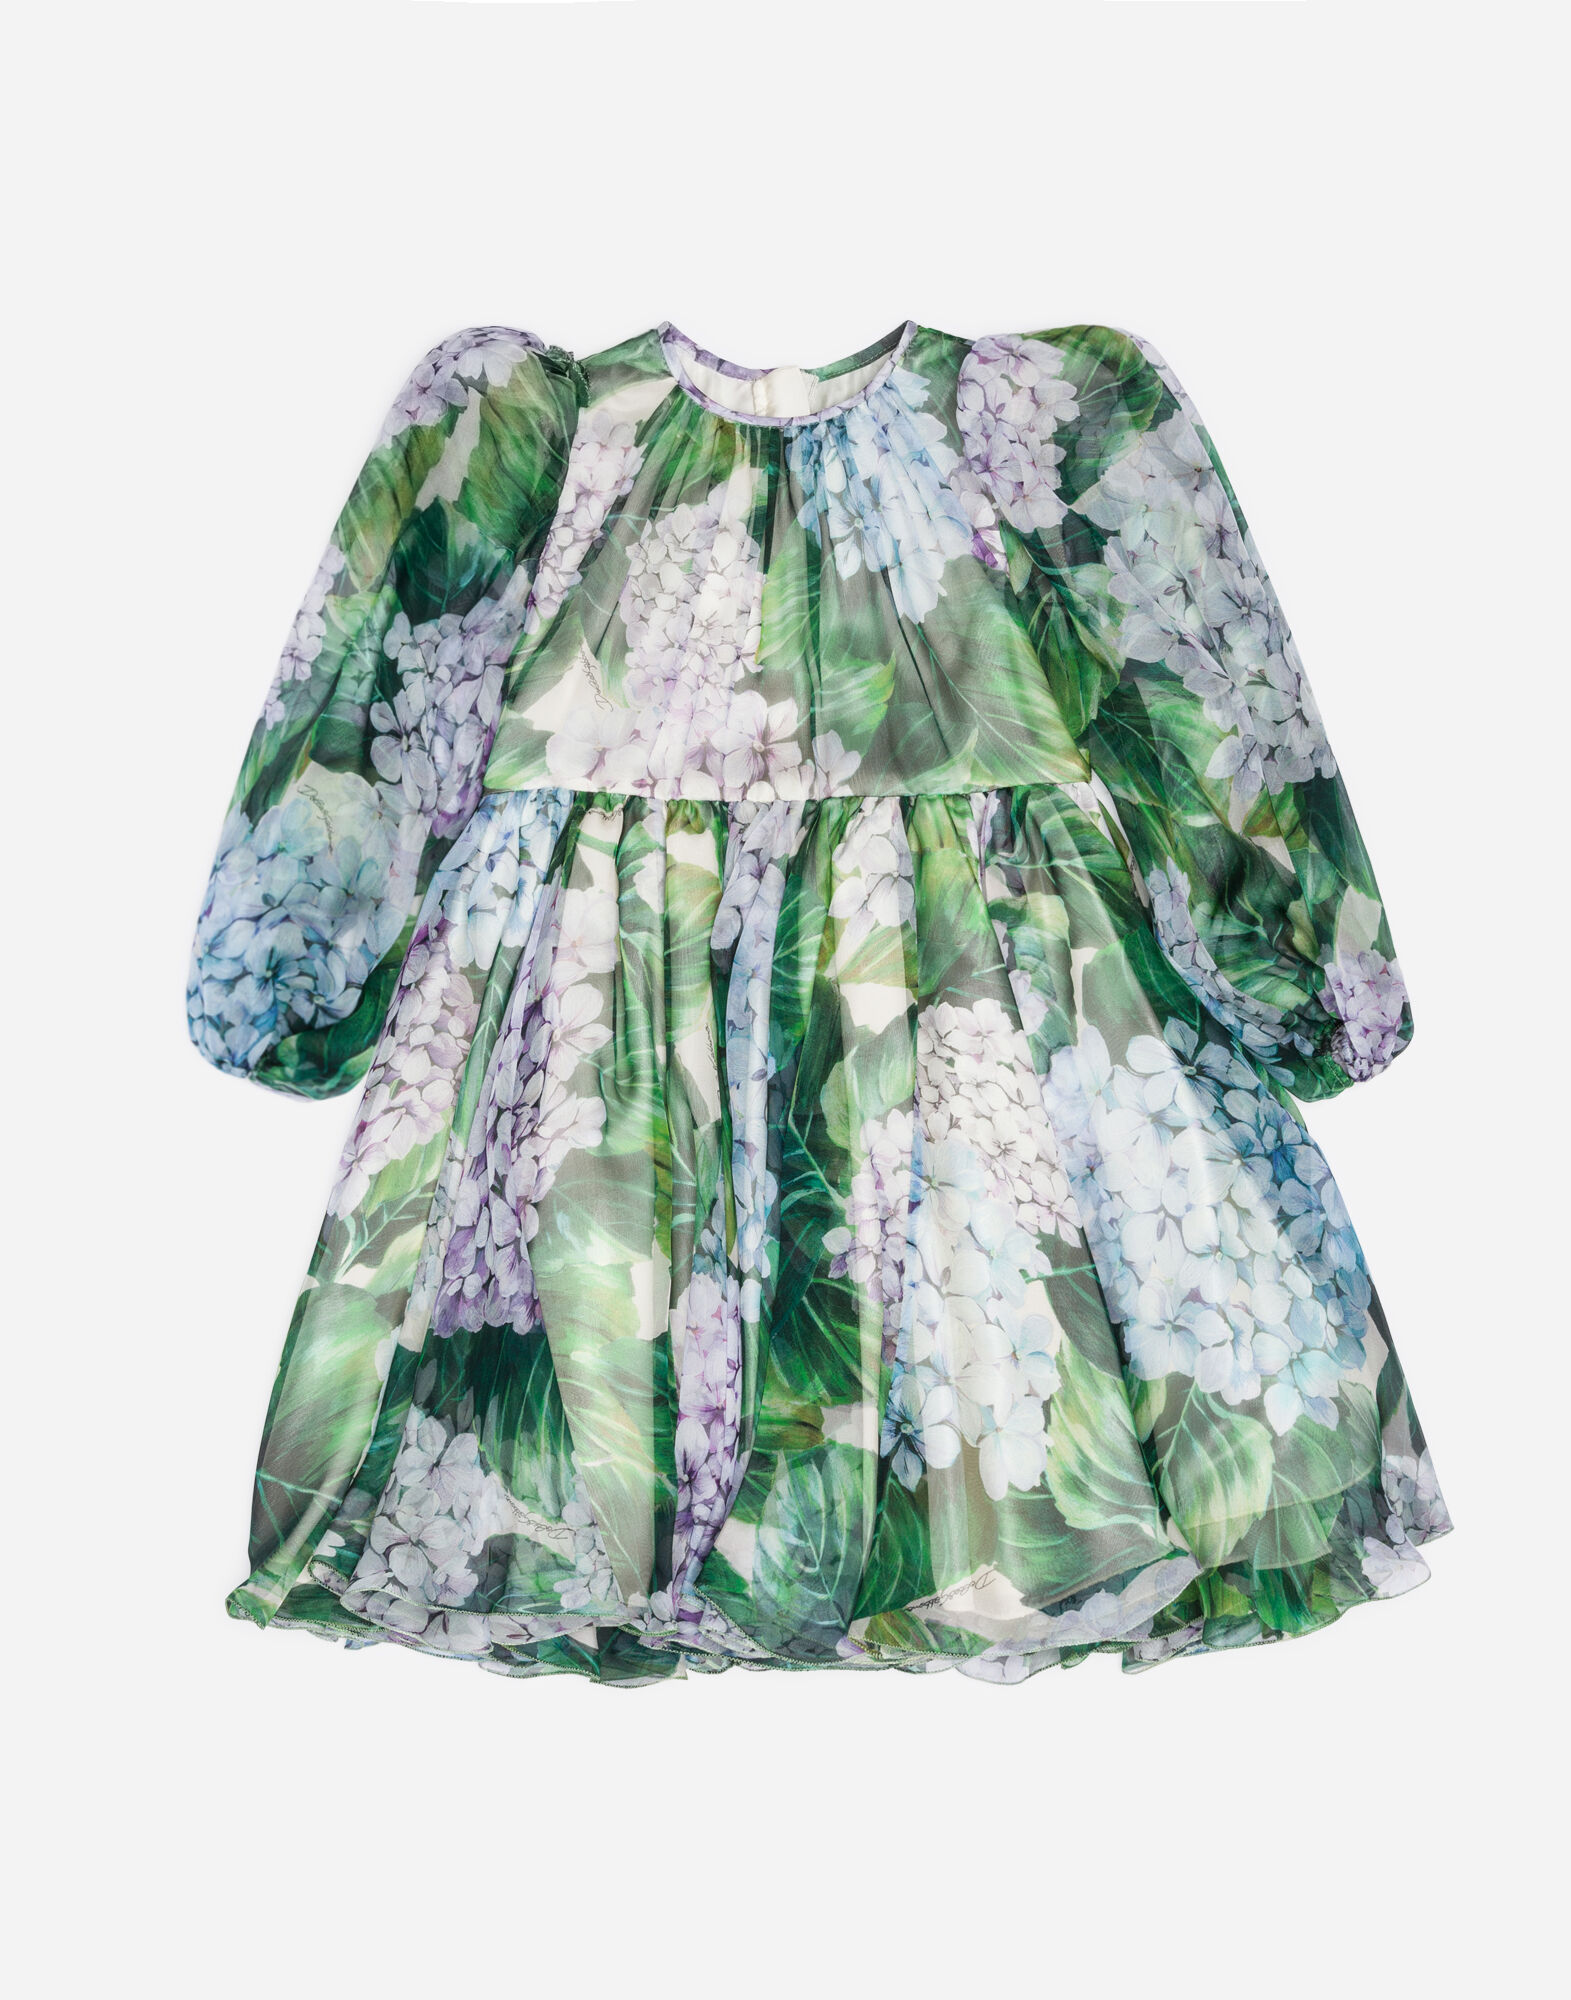 PRINTED SILK CHIFFON DRESS